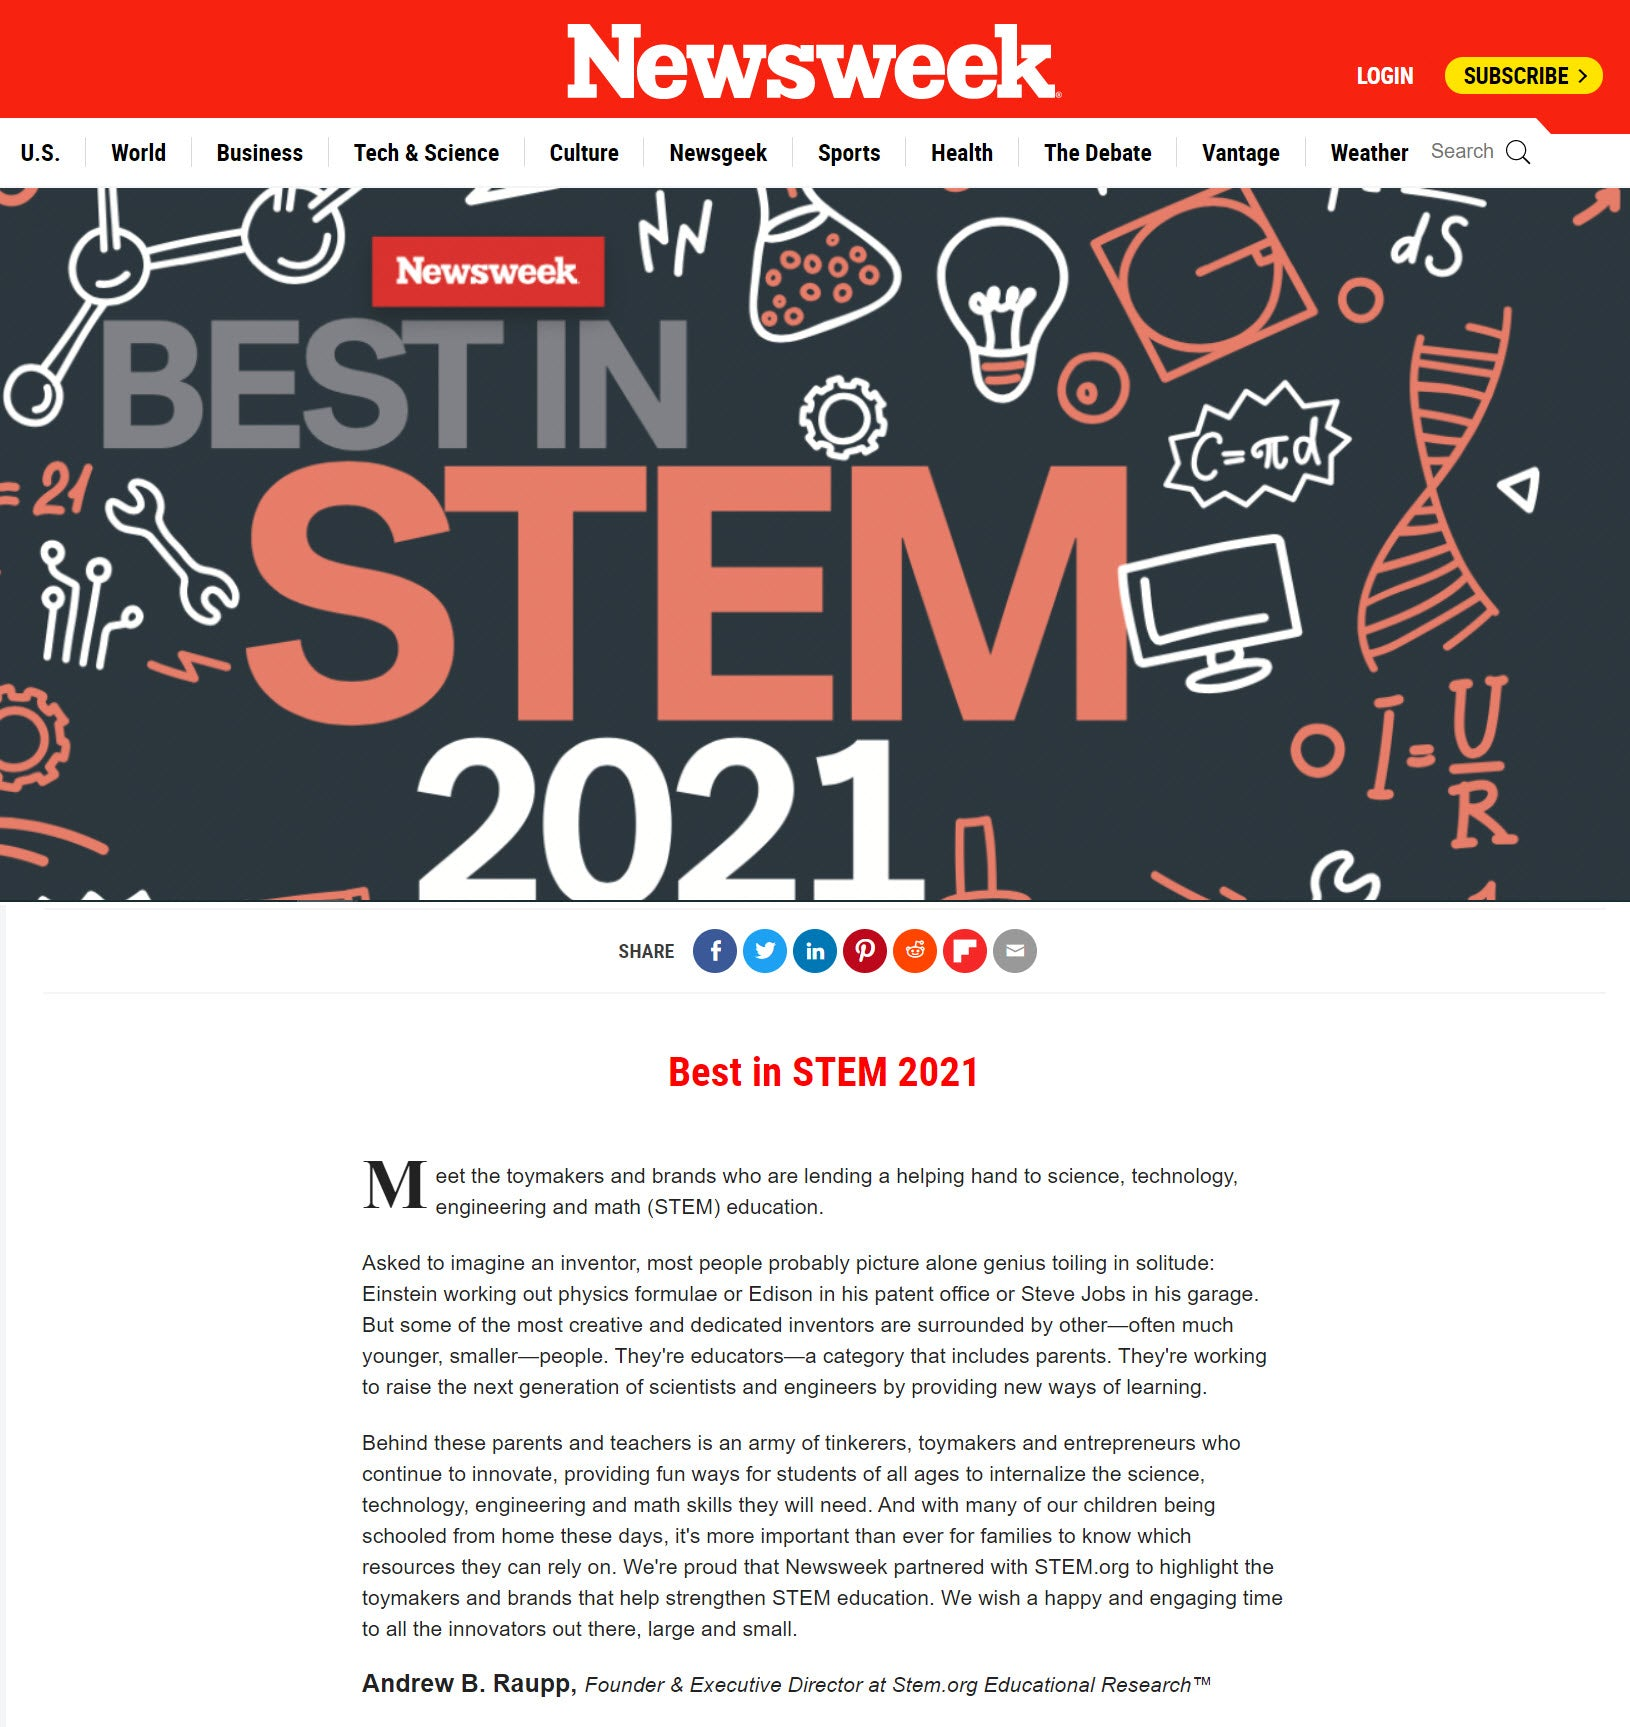 Best Toys in STEM 2021 featured by Newsweek - Unit Bricks and Ugears